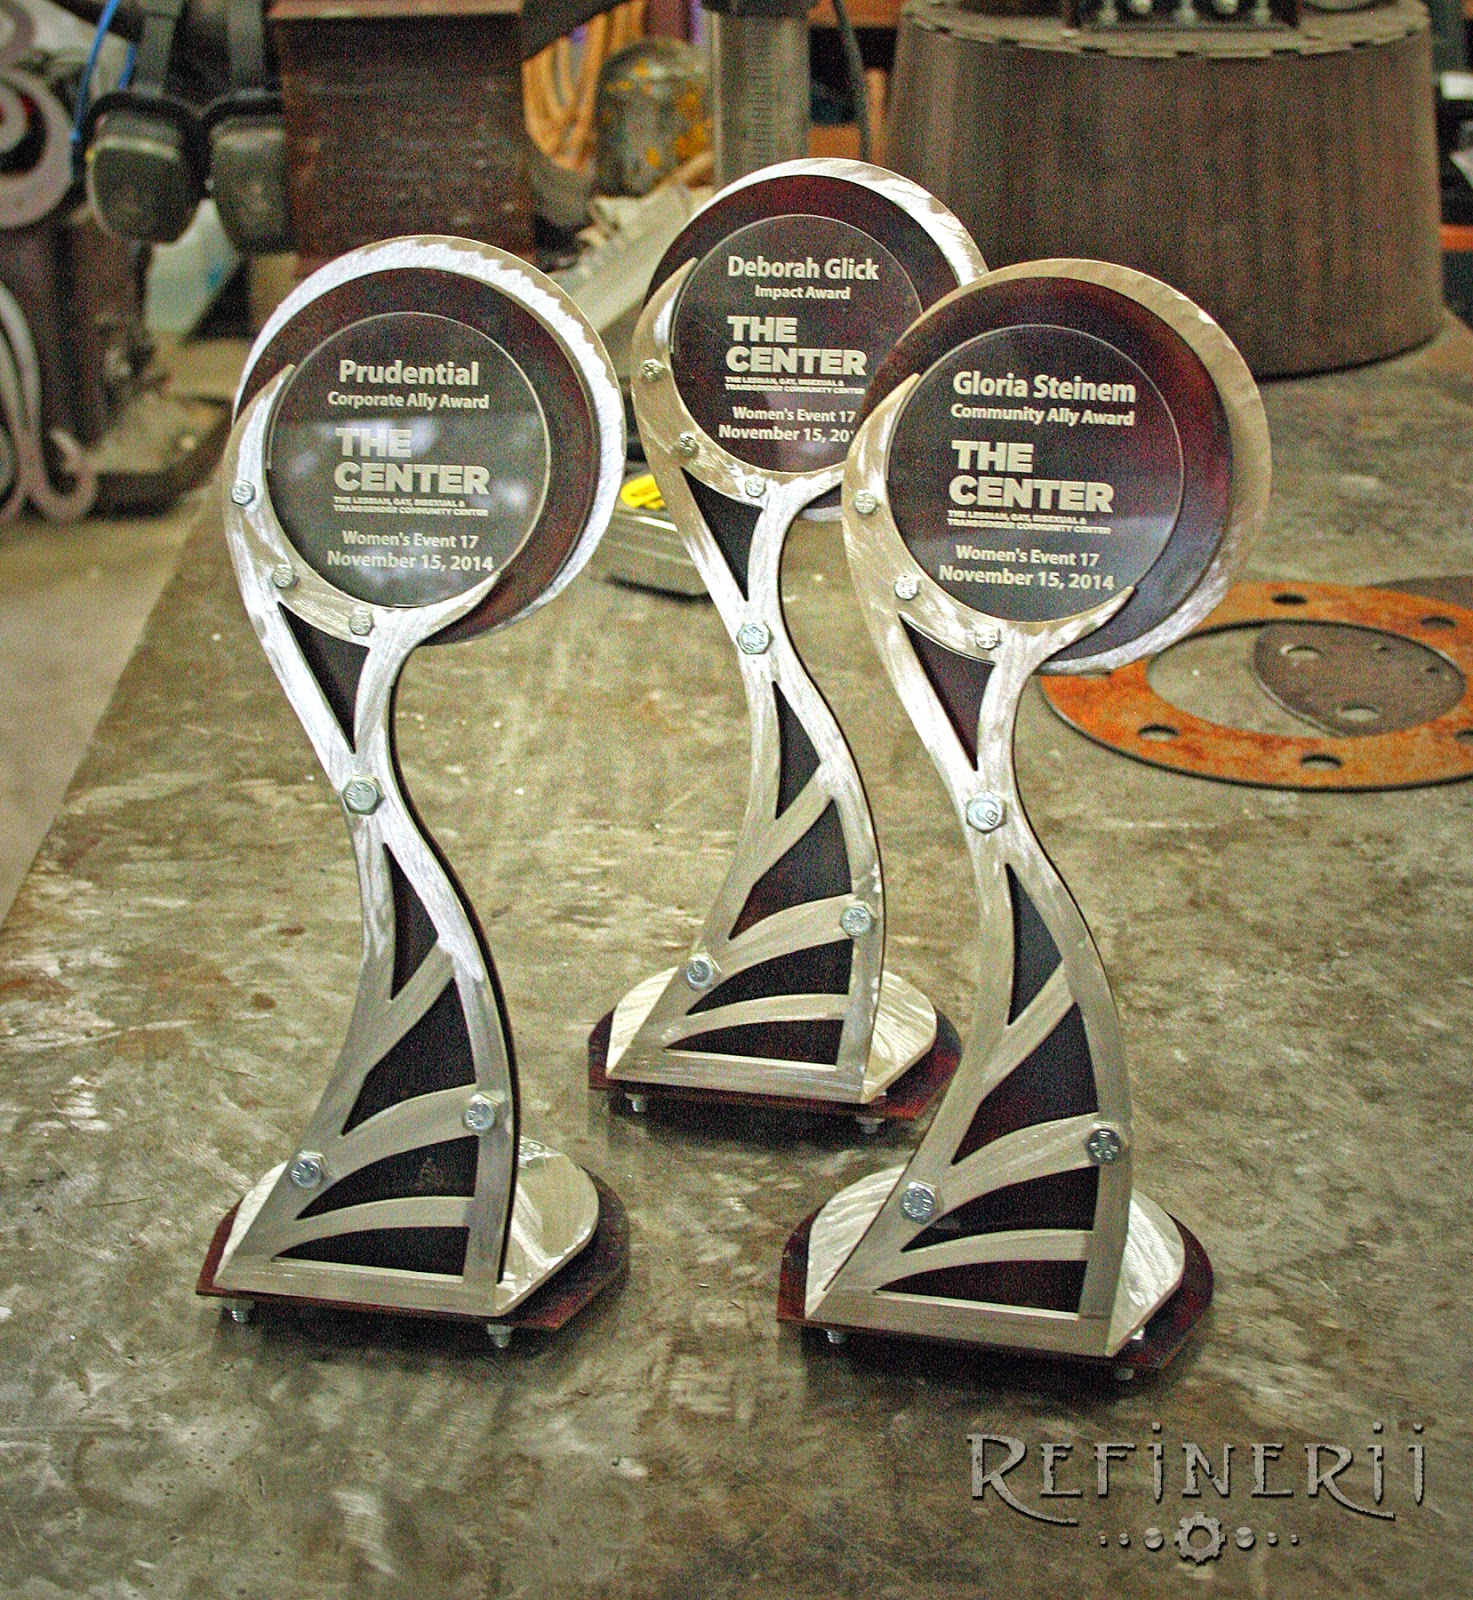 Custom metal trophies created for the Women's Event in New York City